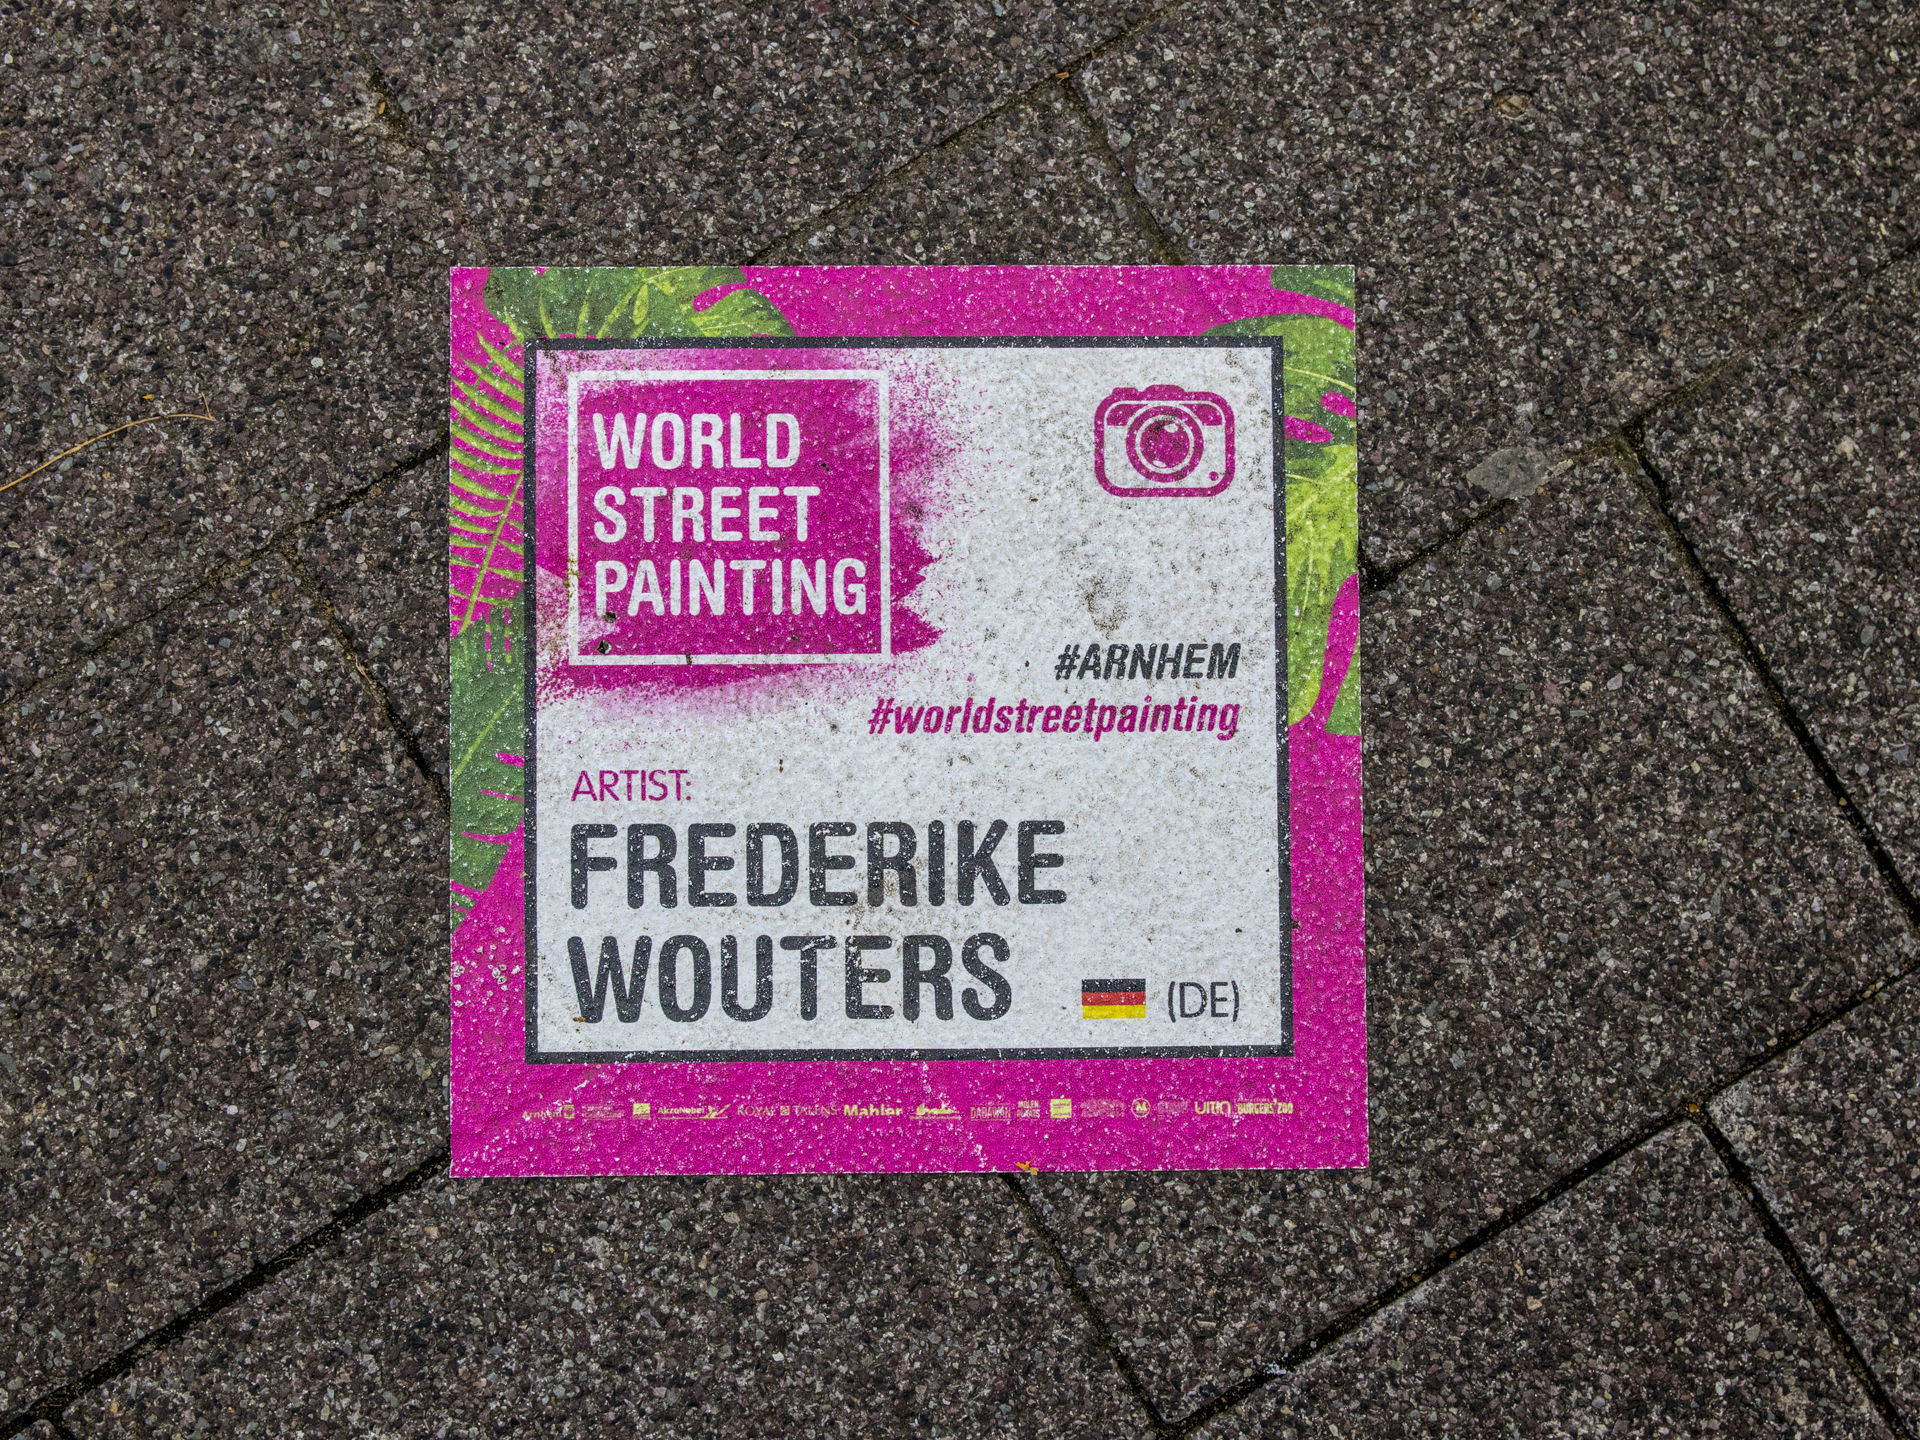 freerike wouters